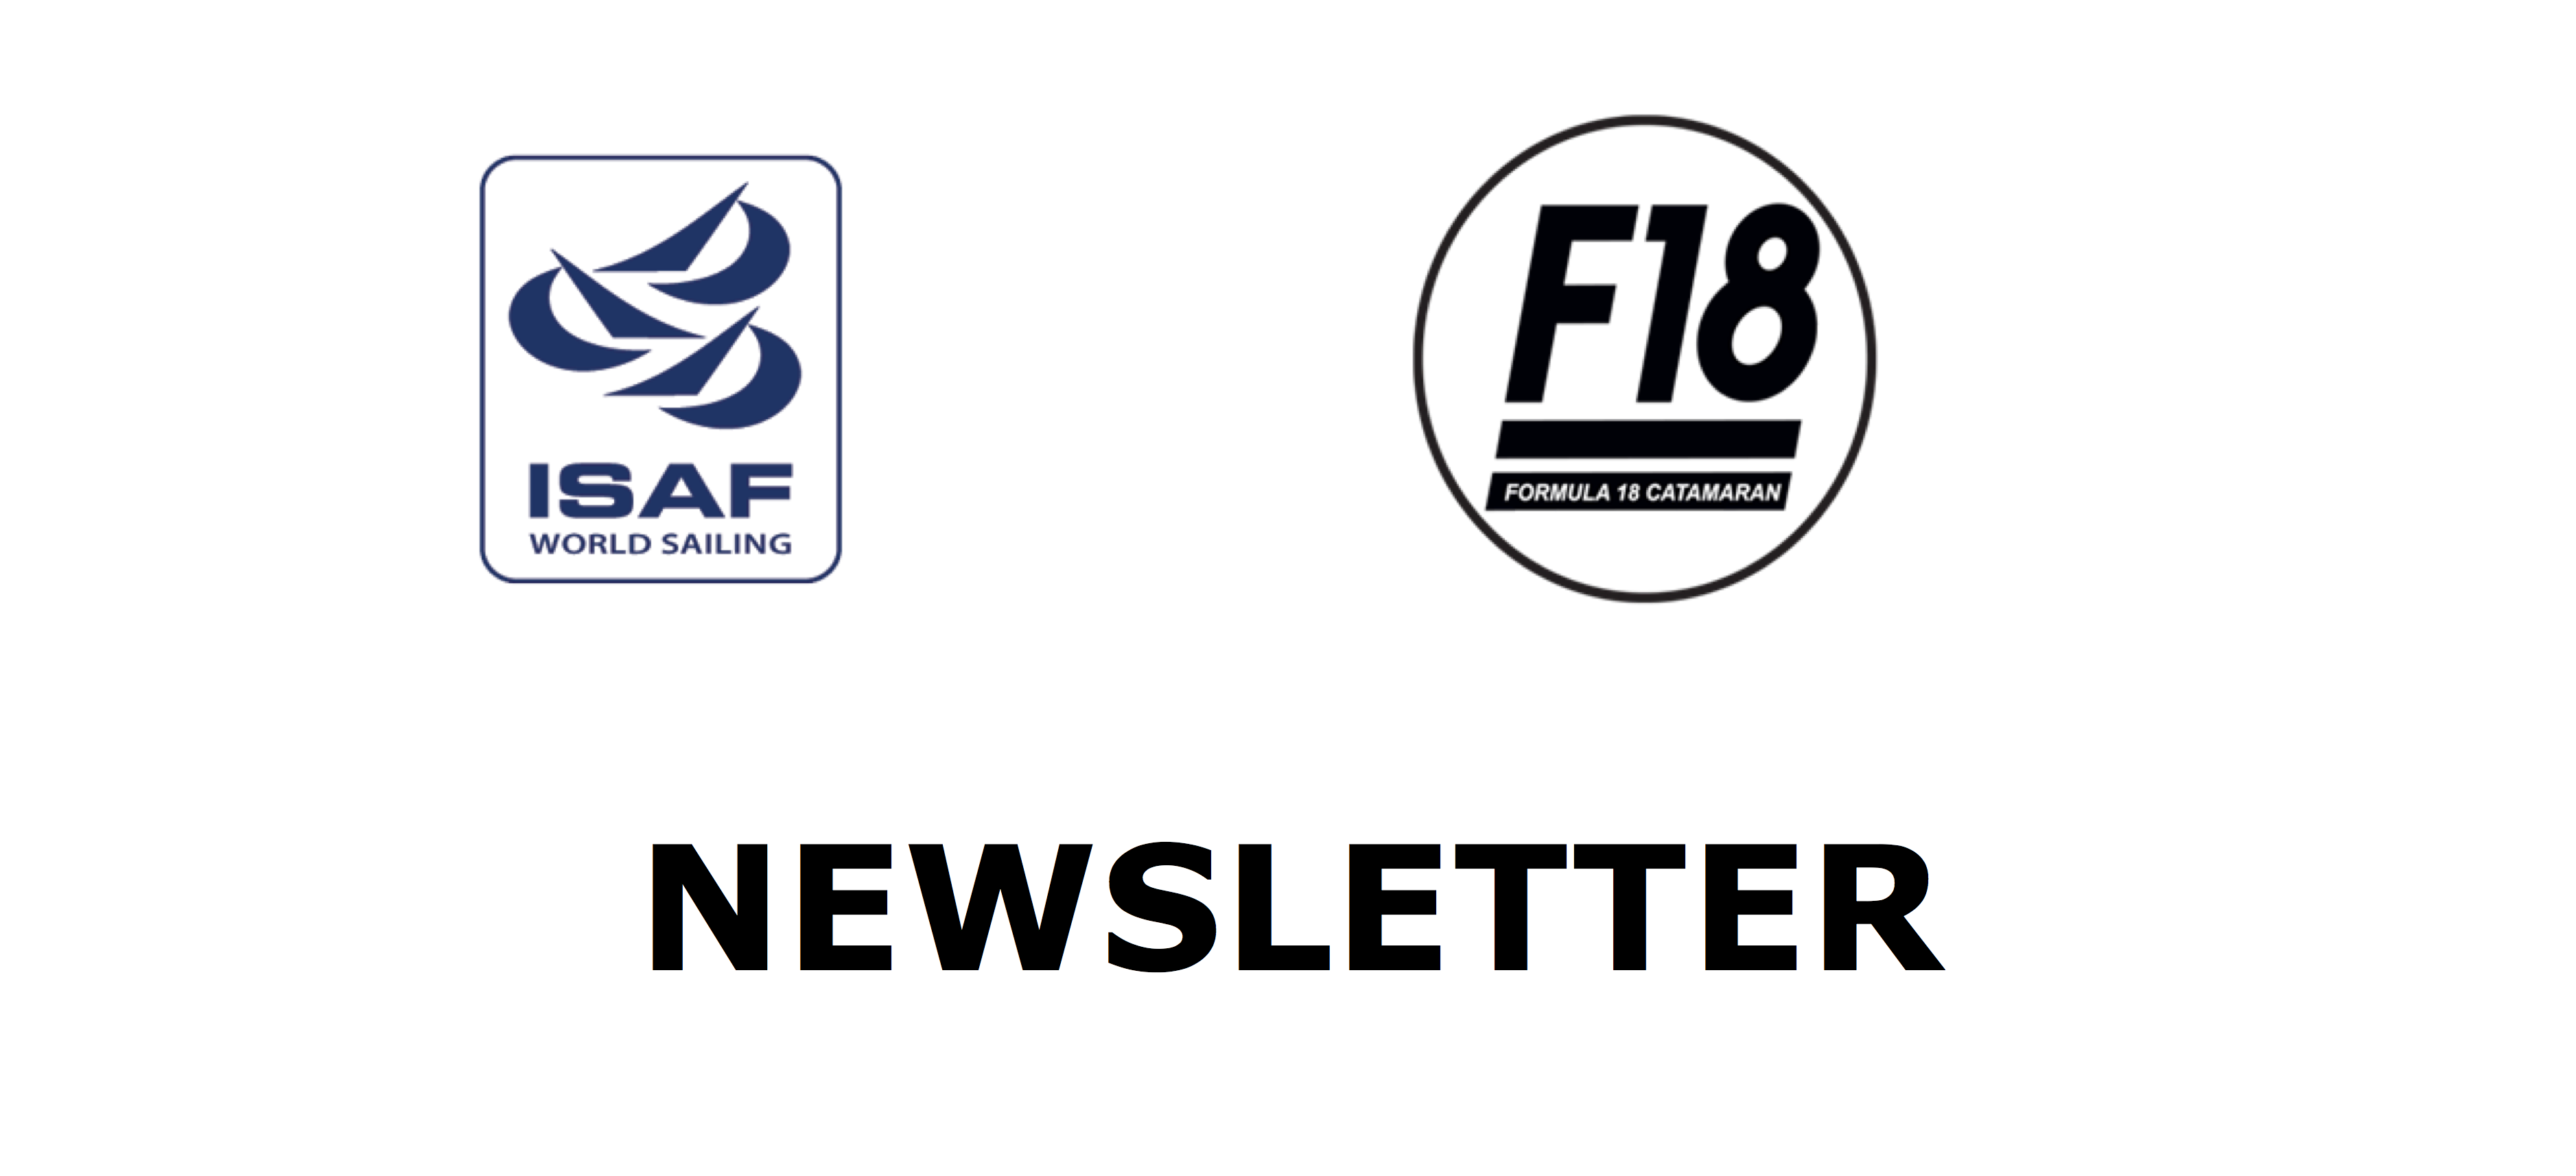 F18 Newsletter announcement